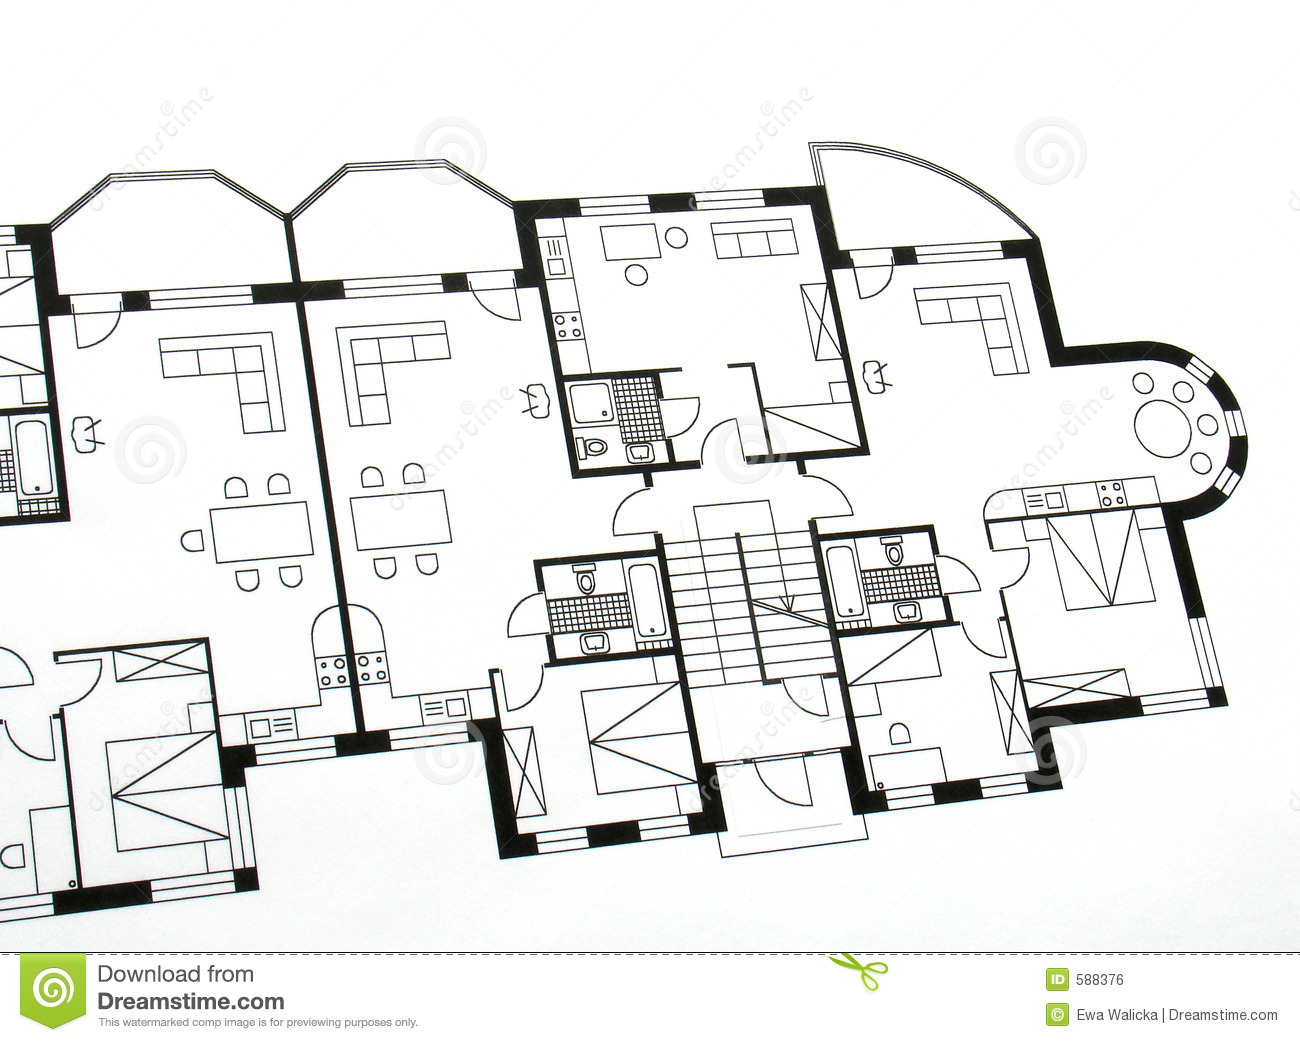 architecture floor plans architectural plan royalty free stock image image 588376 10172